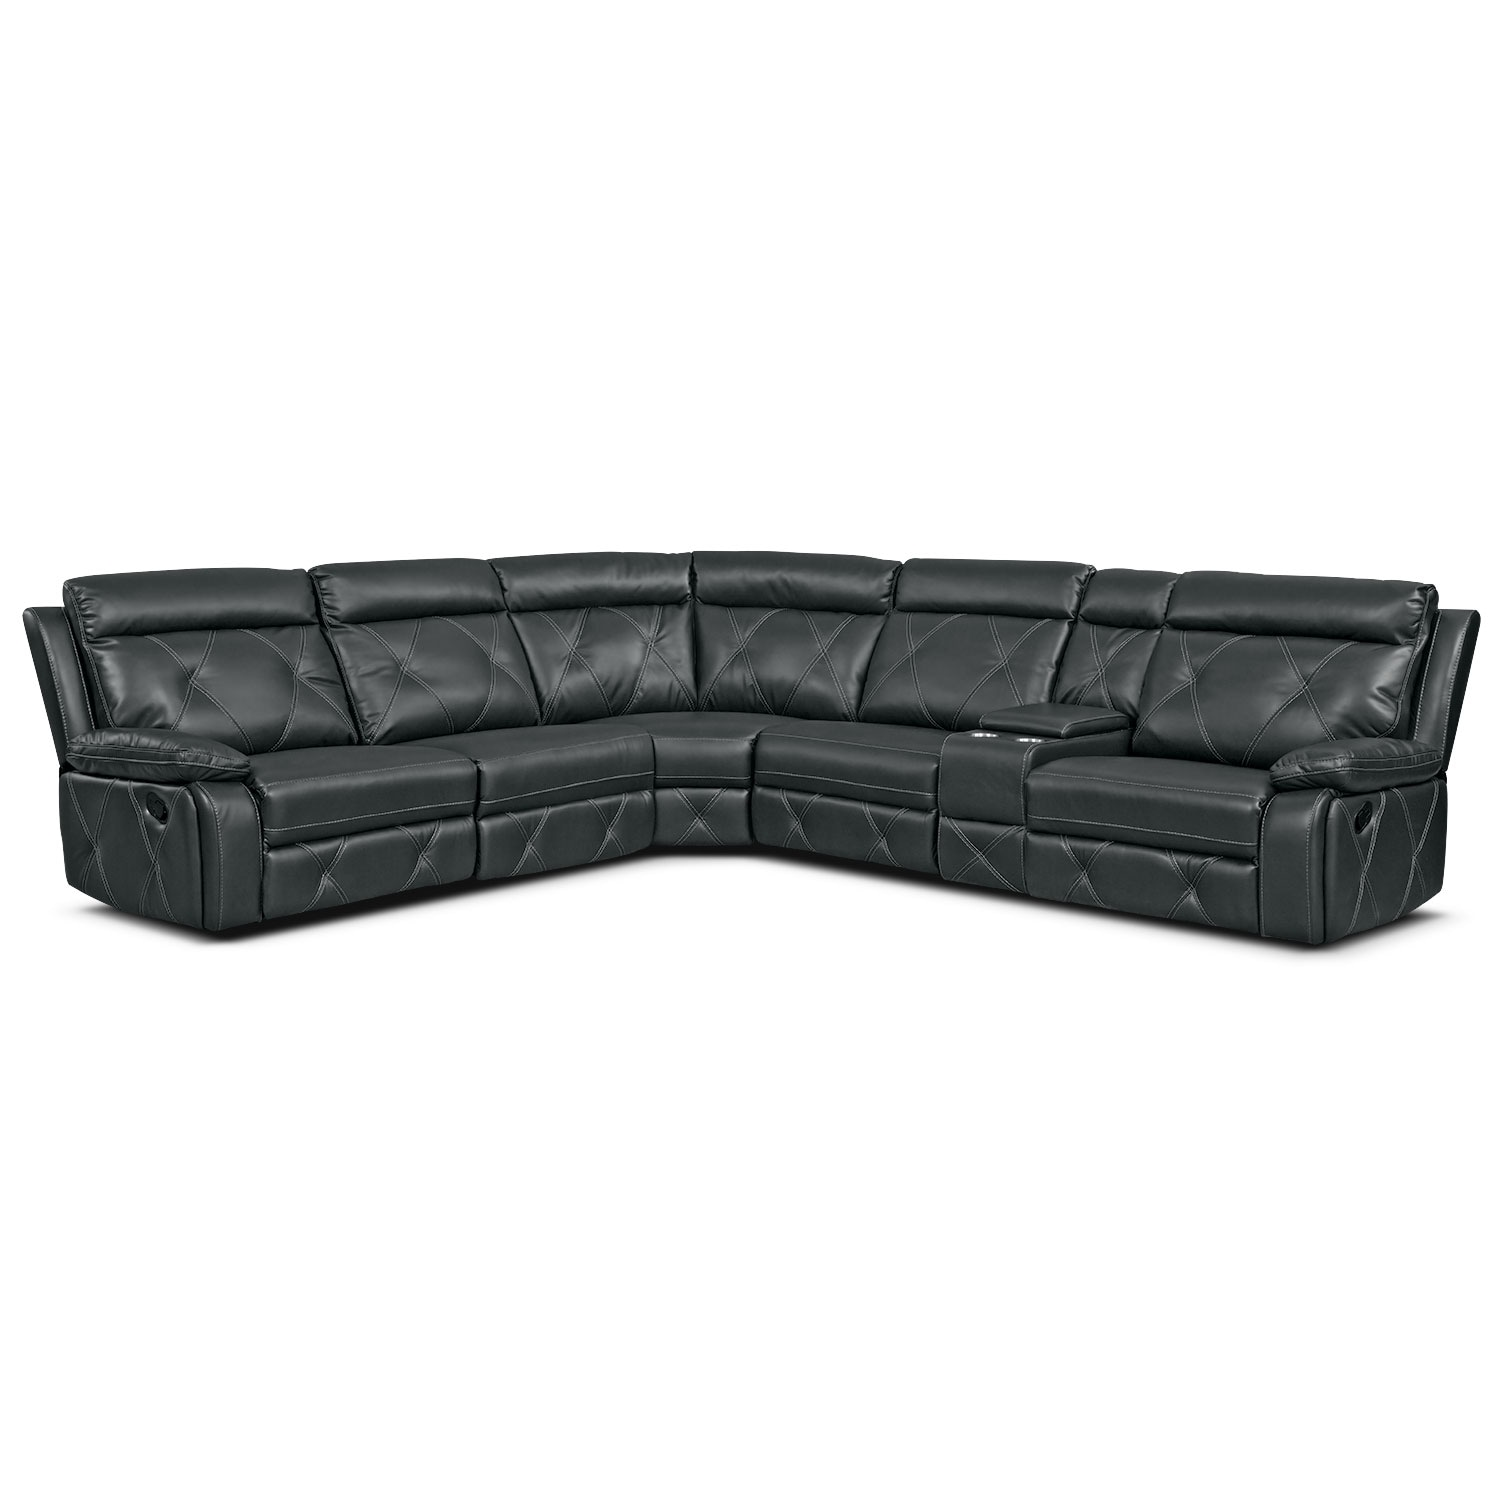 Dante 6-Piece Reclining Sectional with 3 Reclining Seats - Charcoal